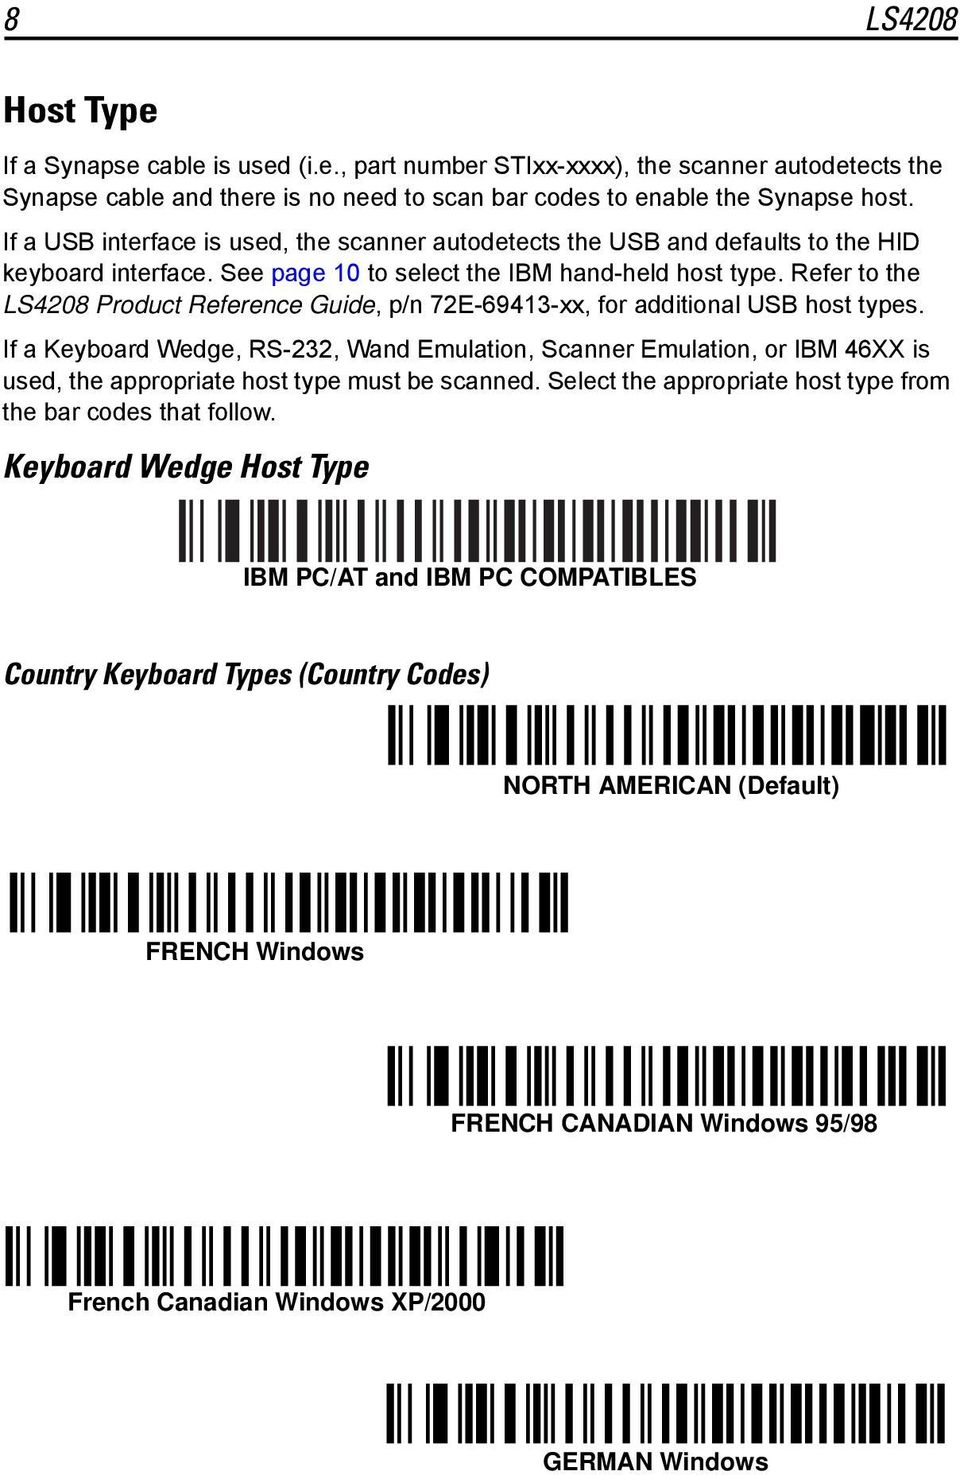 Ls4208 Quick Reference Guide Pdf